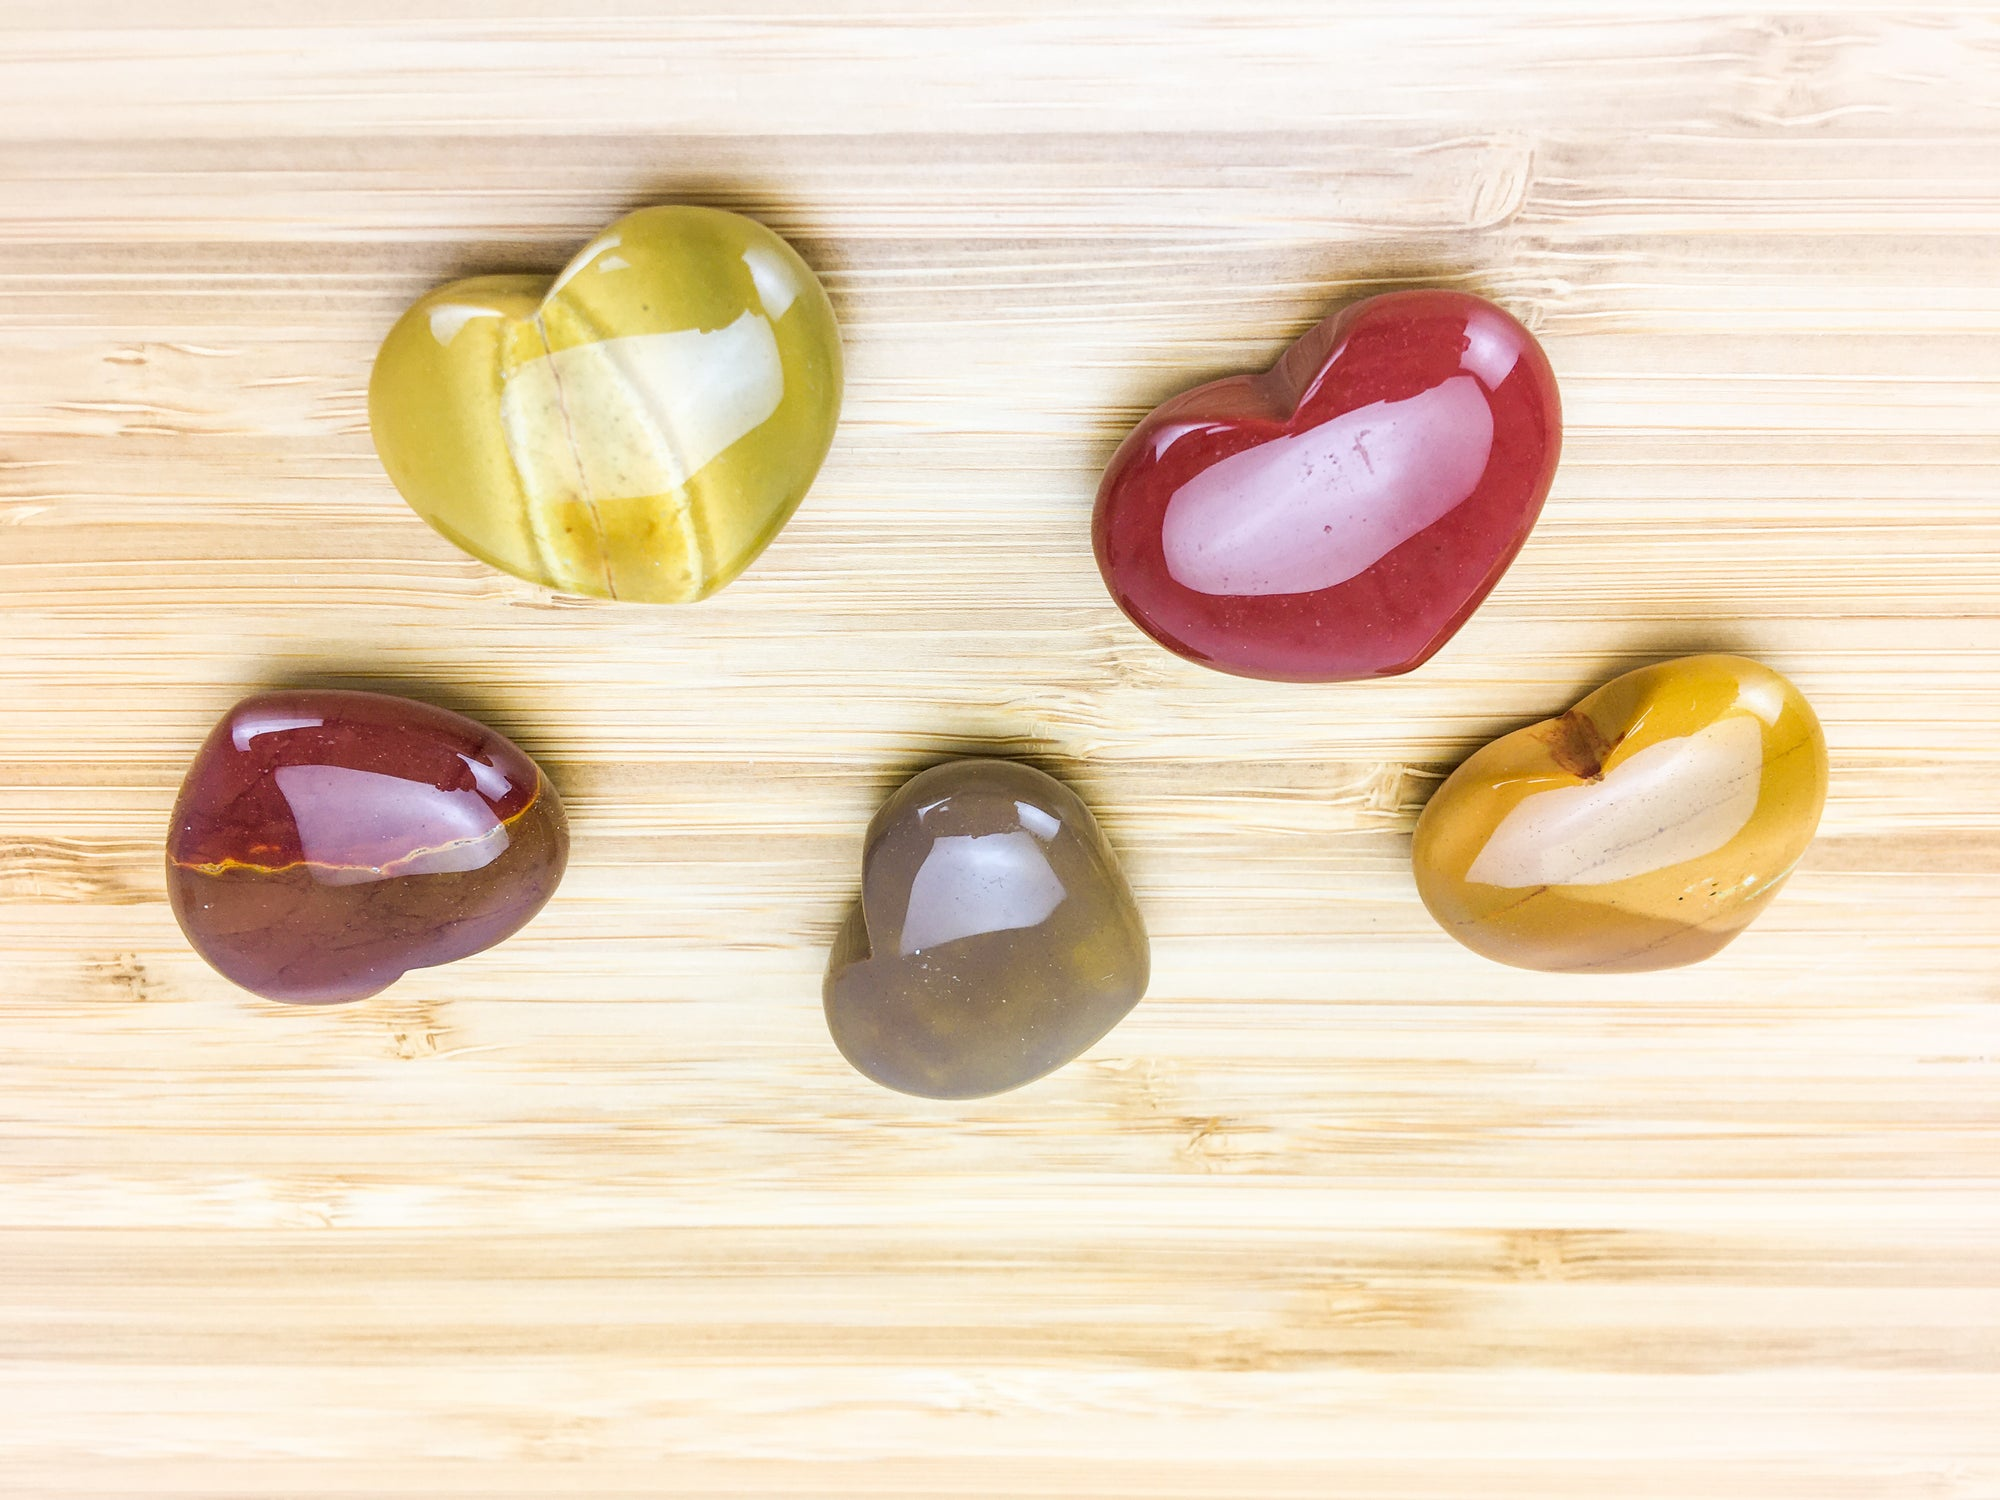 Five mookaite hearts on a grained wood table. The moojaite shows intense colour variation. Some pieces are red and some are orange